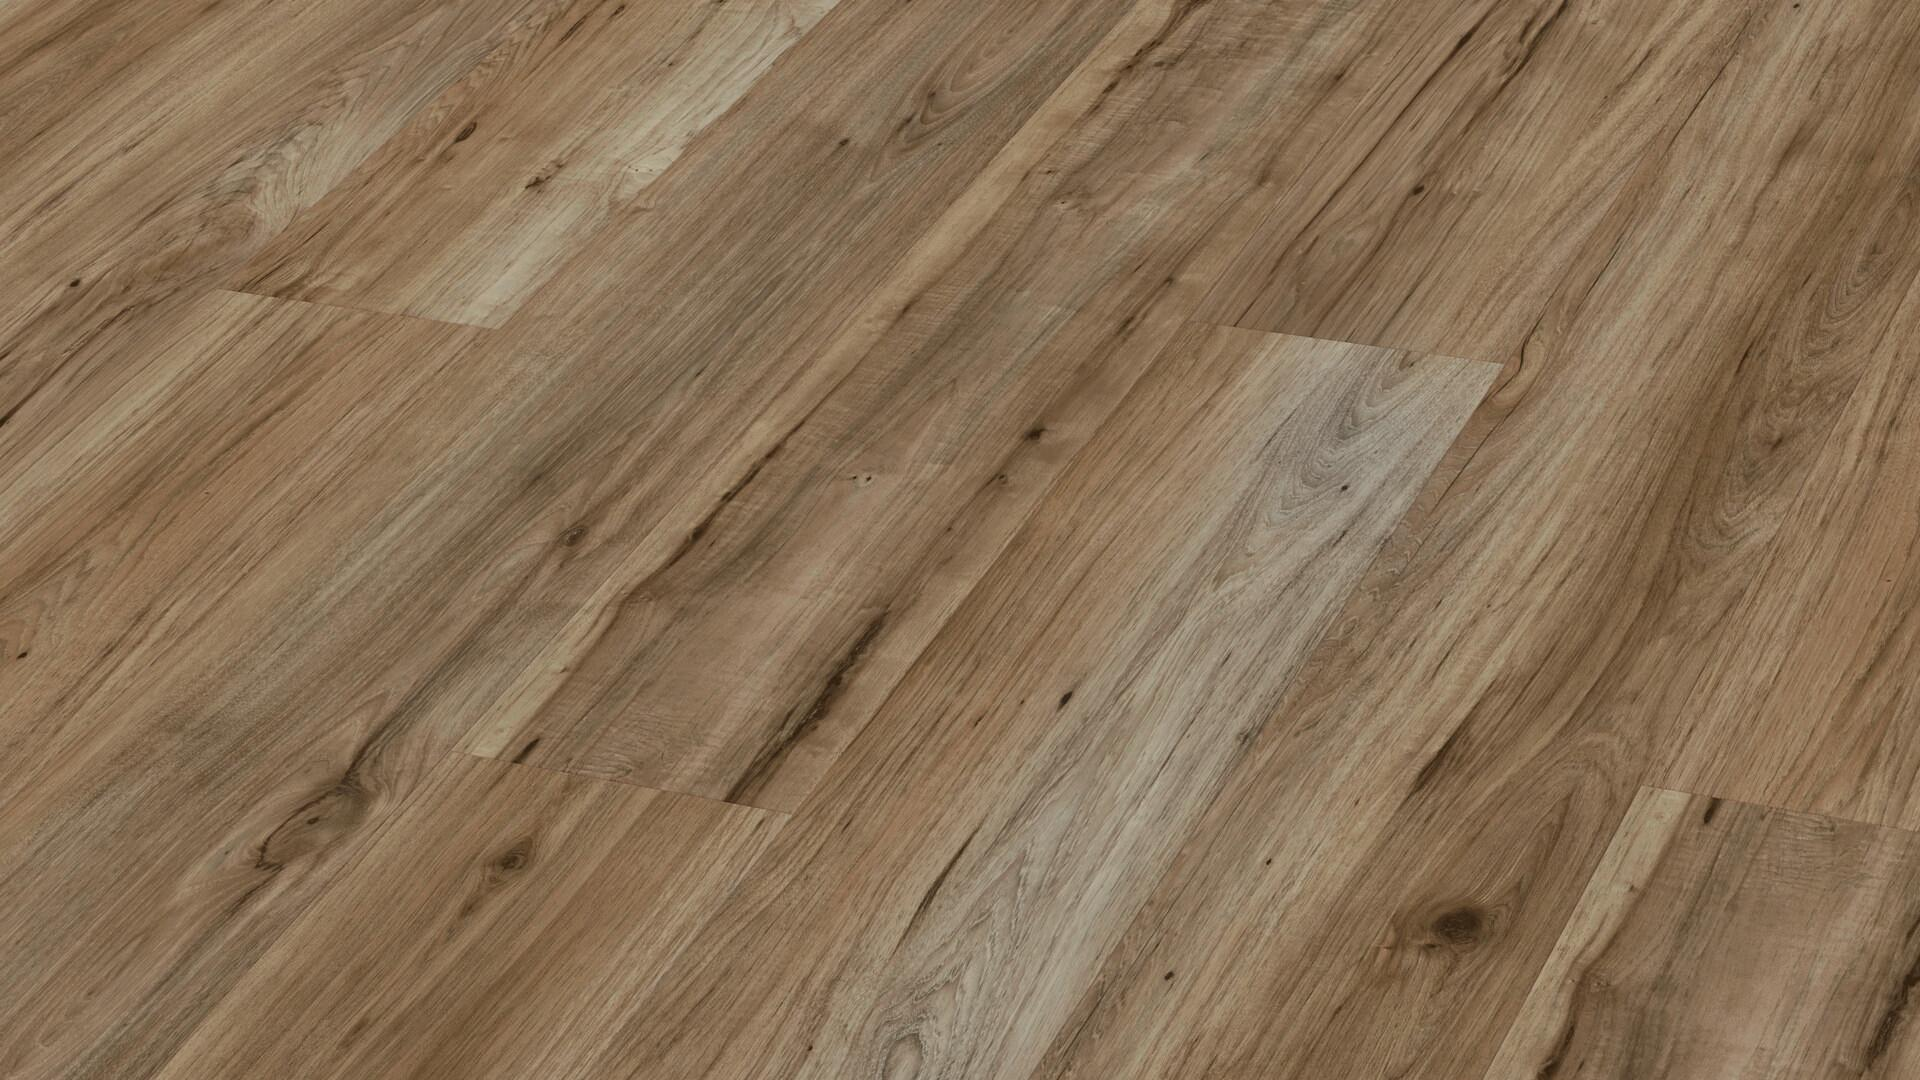 Laminate flooring MeisterDesign. laminate LL 150 Vintage walnut 6845